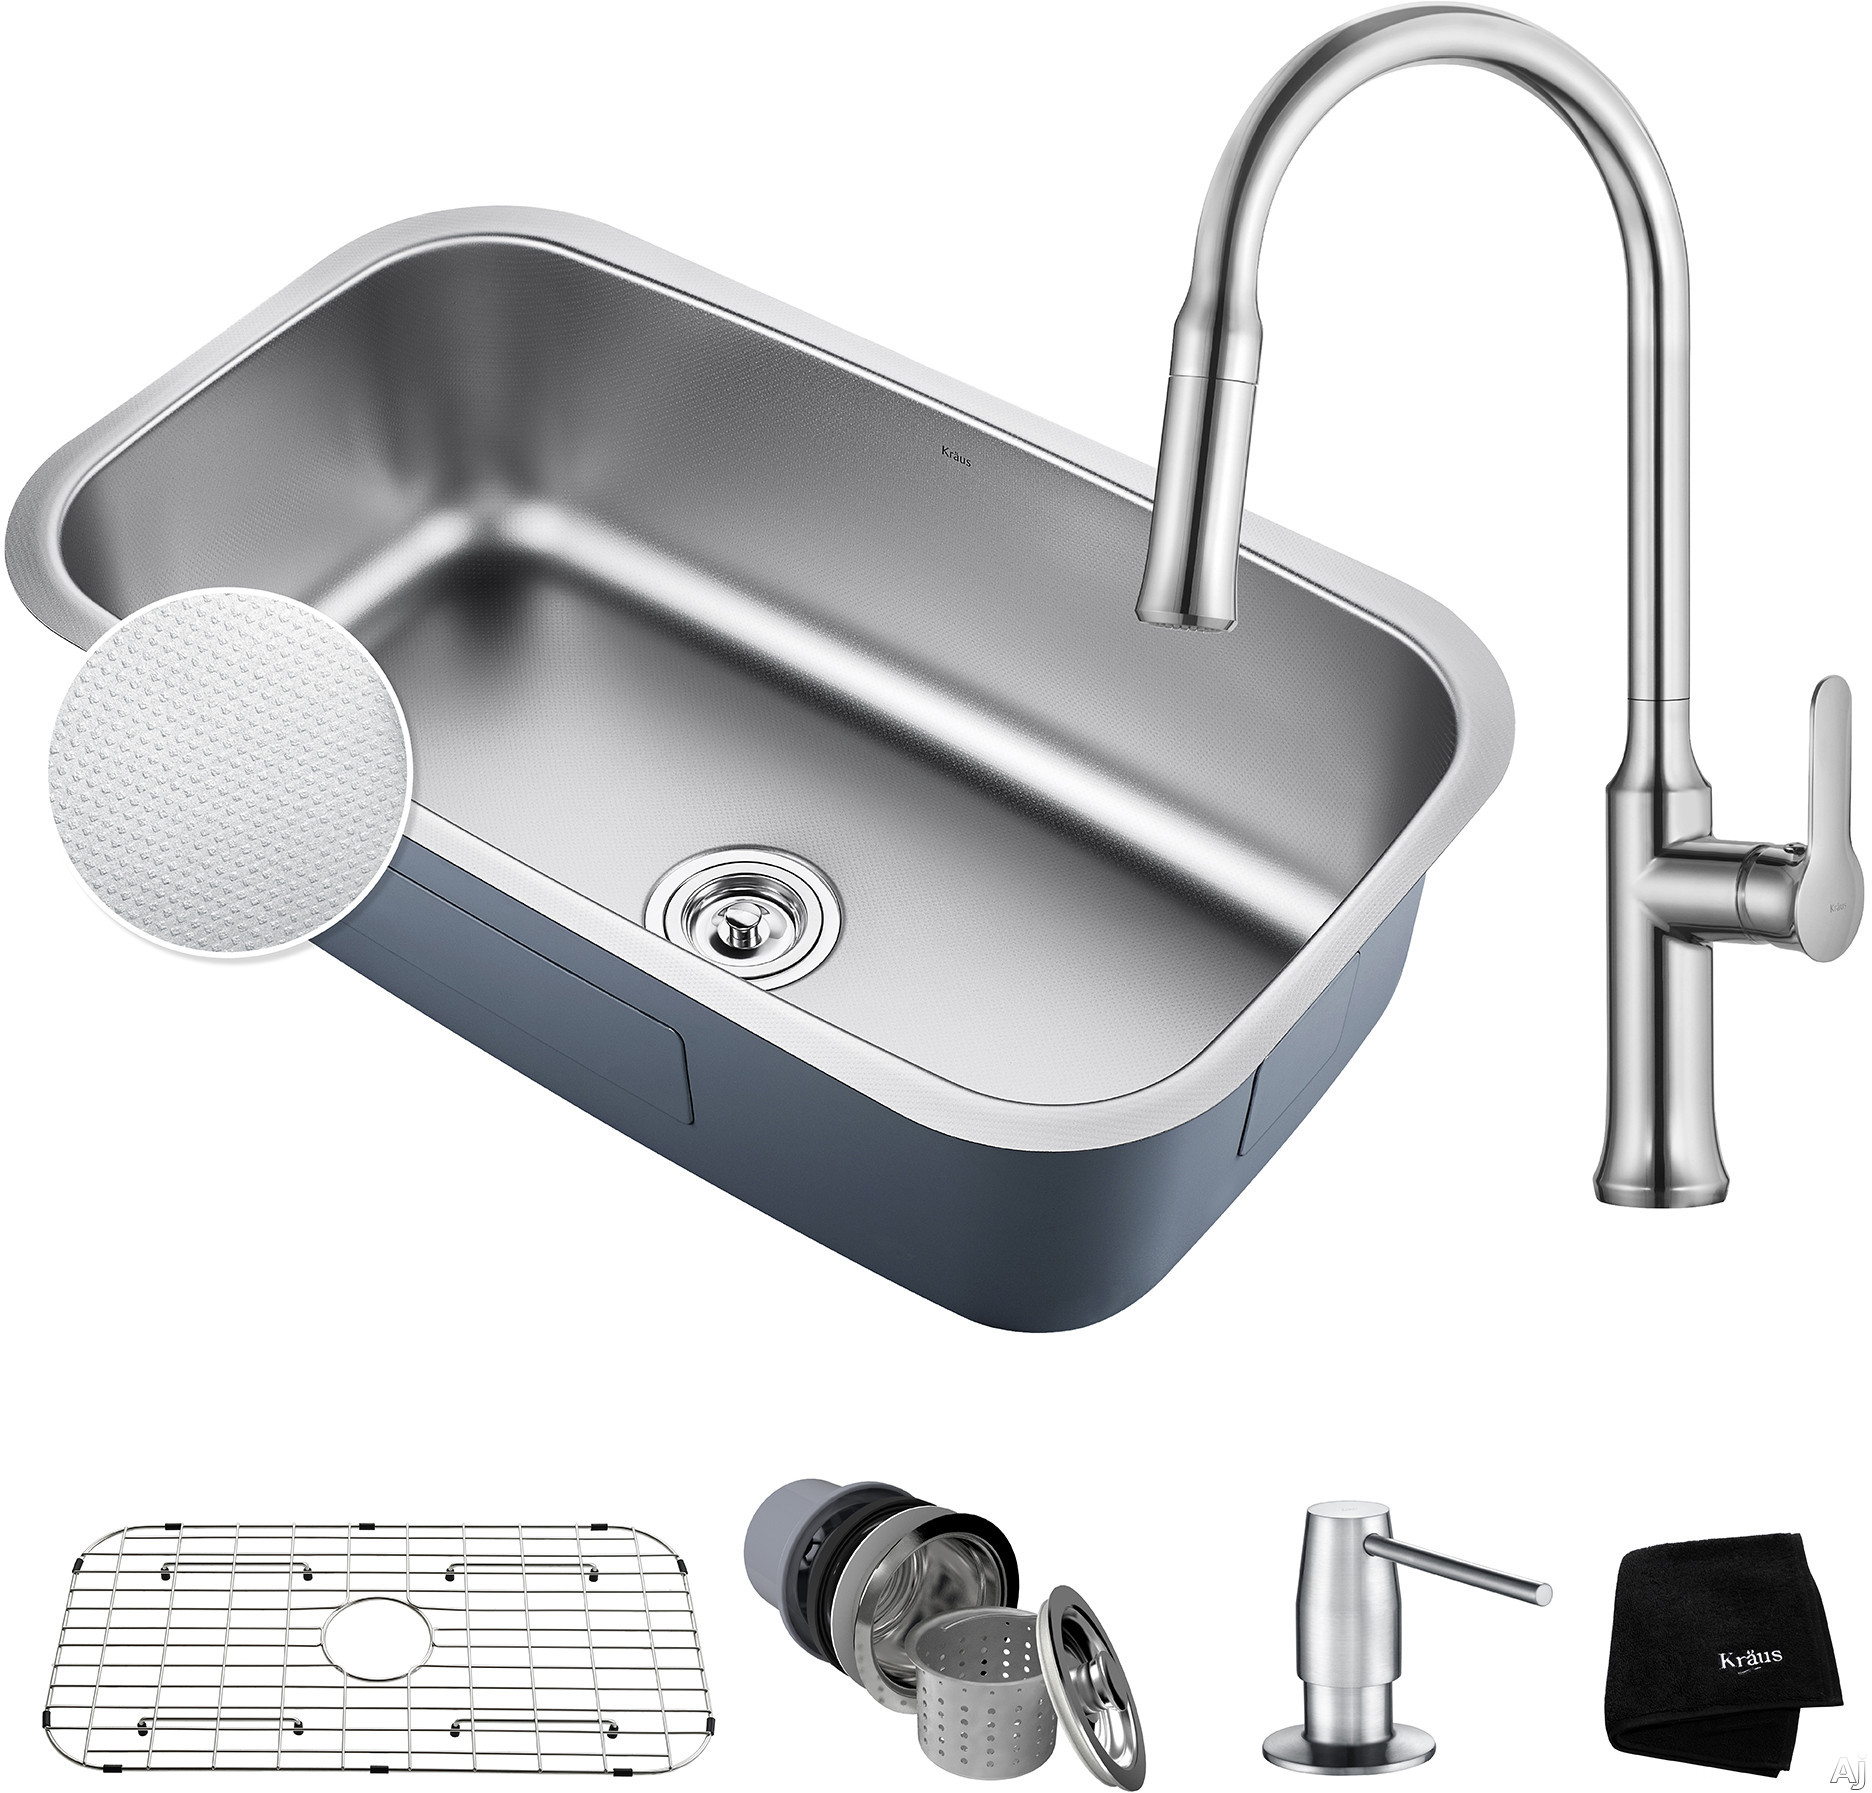 "Kraus Outlast Series KBU14E163042CH 31-1/2 Inch Kitchen Sink and Faucet Combo with Outlast MicroShieldâ""¢, NoiseDefendâ""¢ and 16-Gauge Stainless Steel: Chrome"